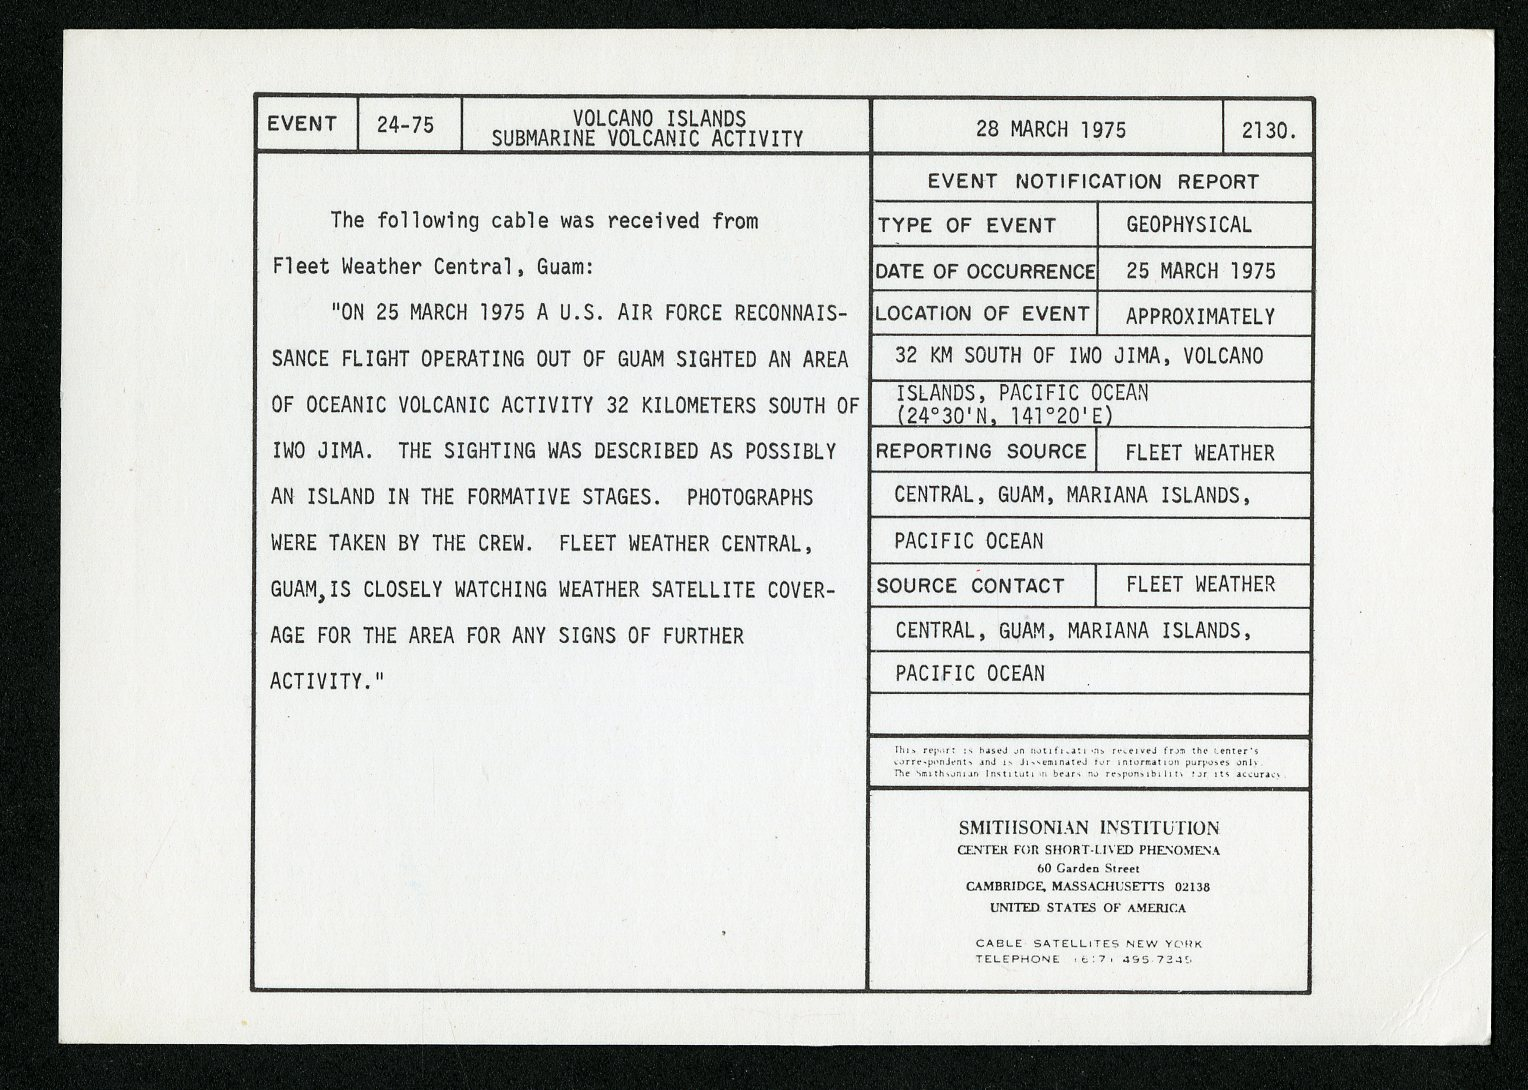 Event card - Volcano Islands Submarine Volcanic Activity, March 28, 1975